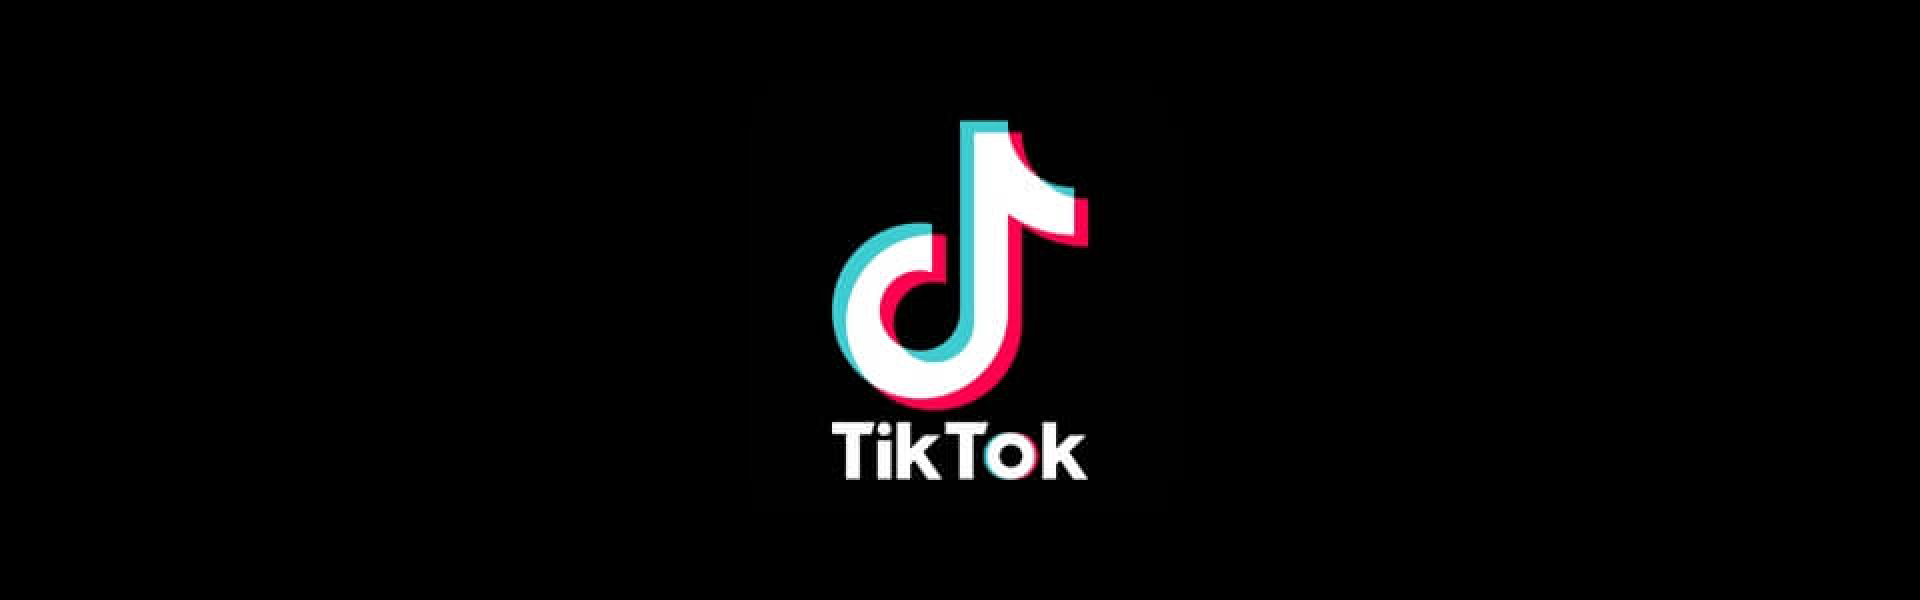 TikTok App Popularity Secrets and Some Handy Tips for an App-Like-It Development